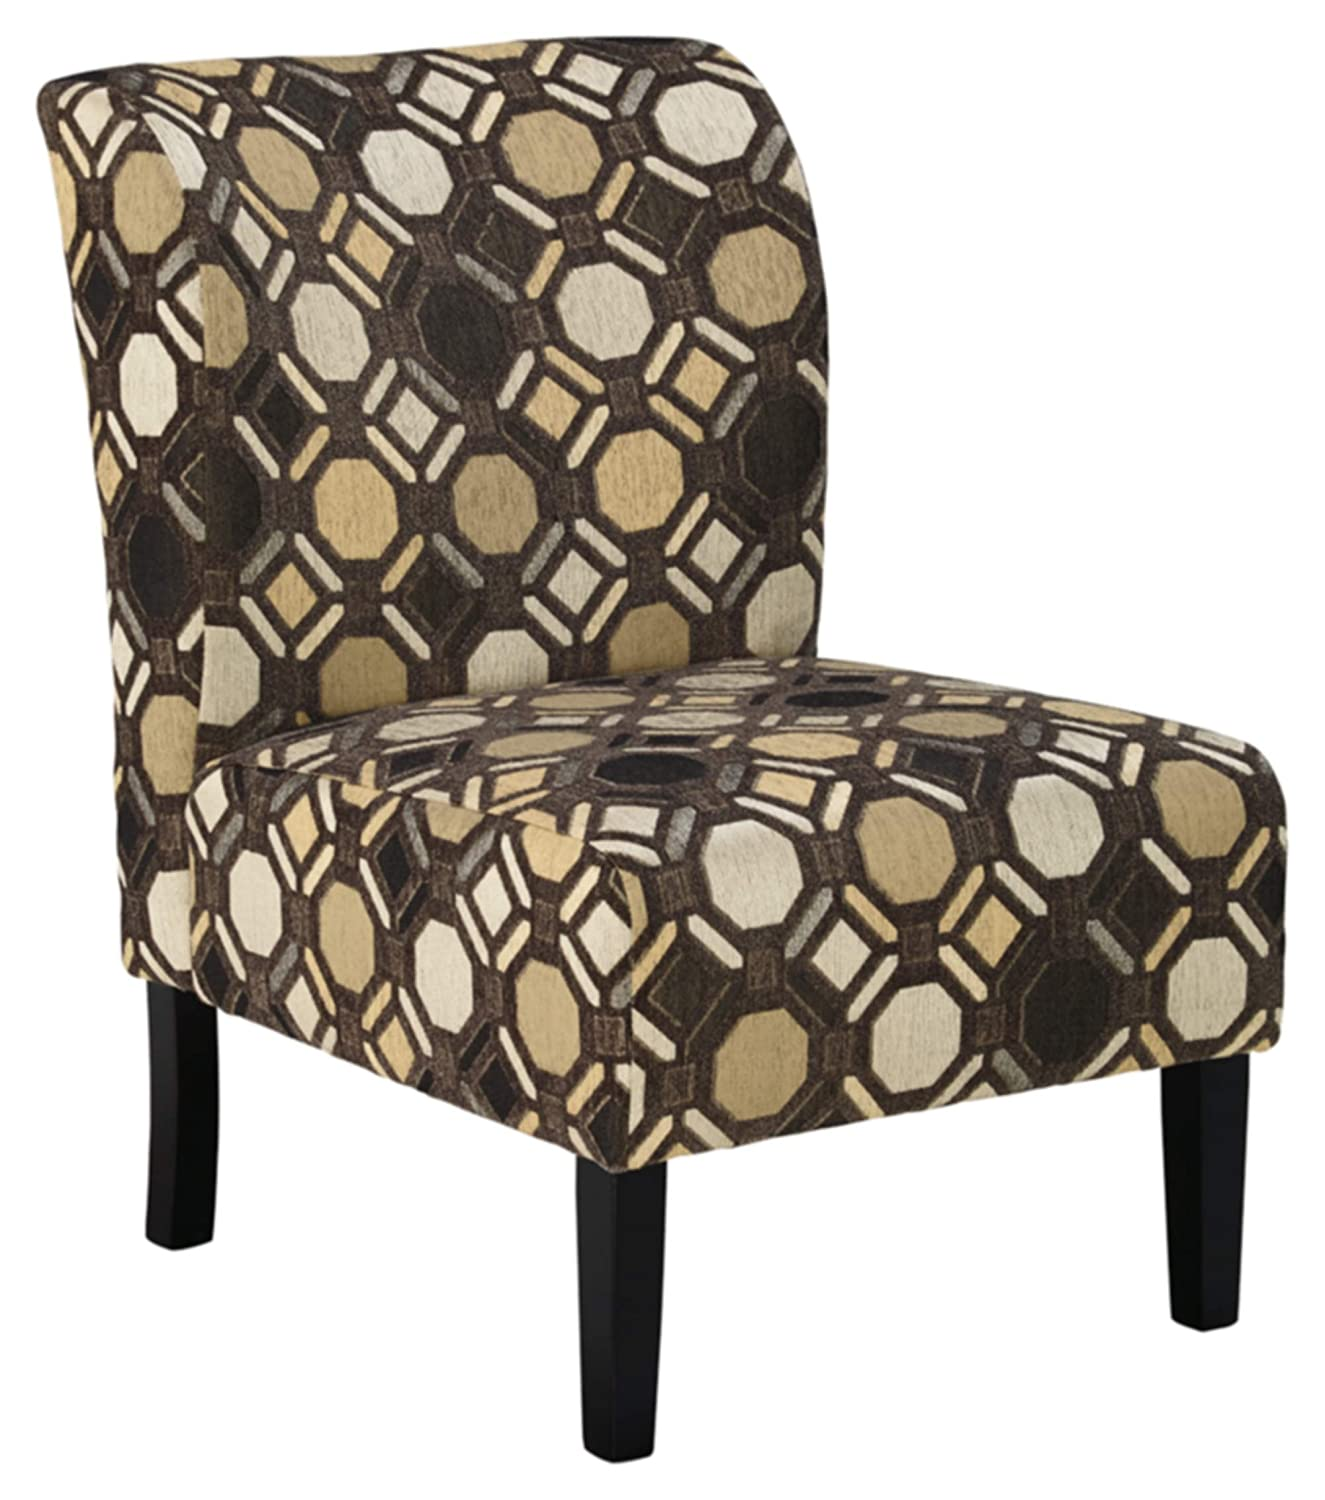 Ashley Furniture Signature Design - Tibbee Accent Chair - Pebble